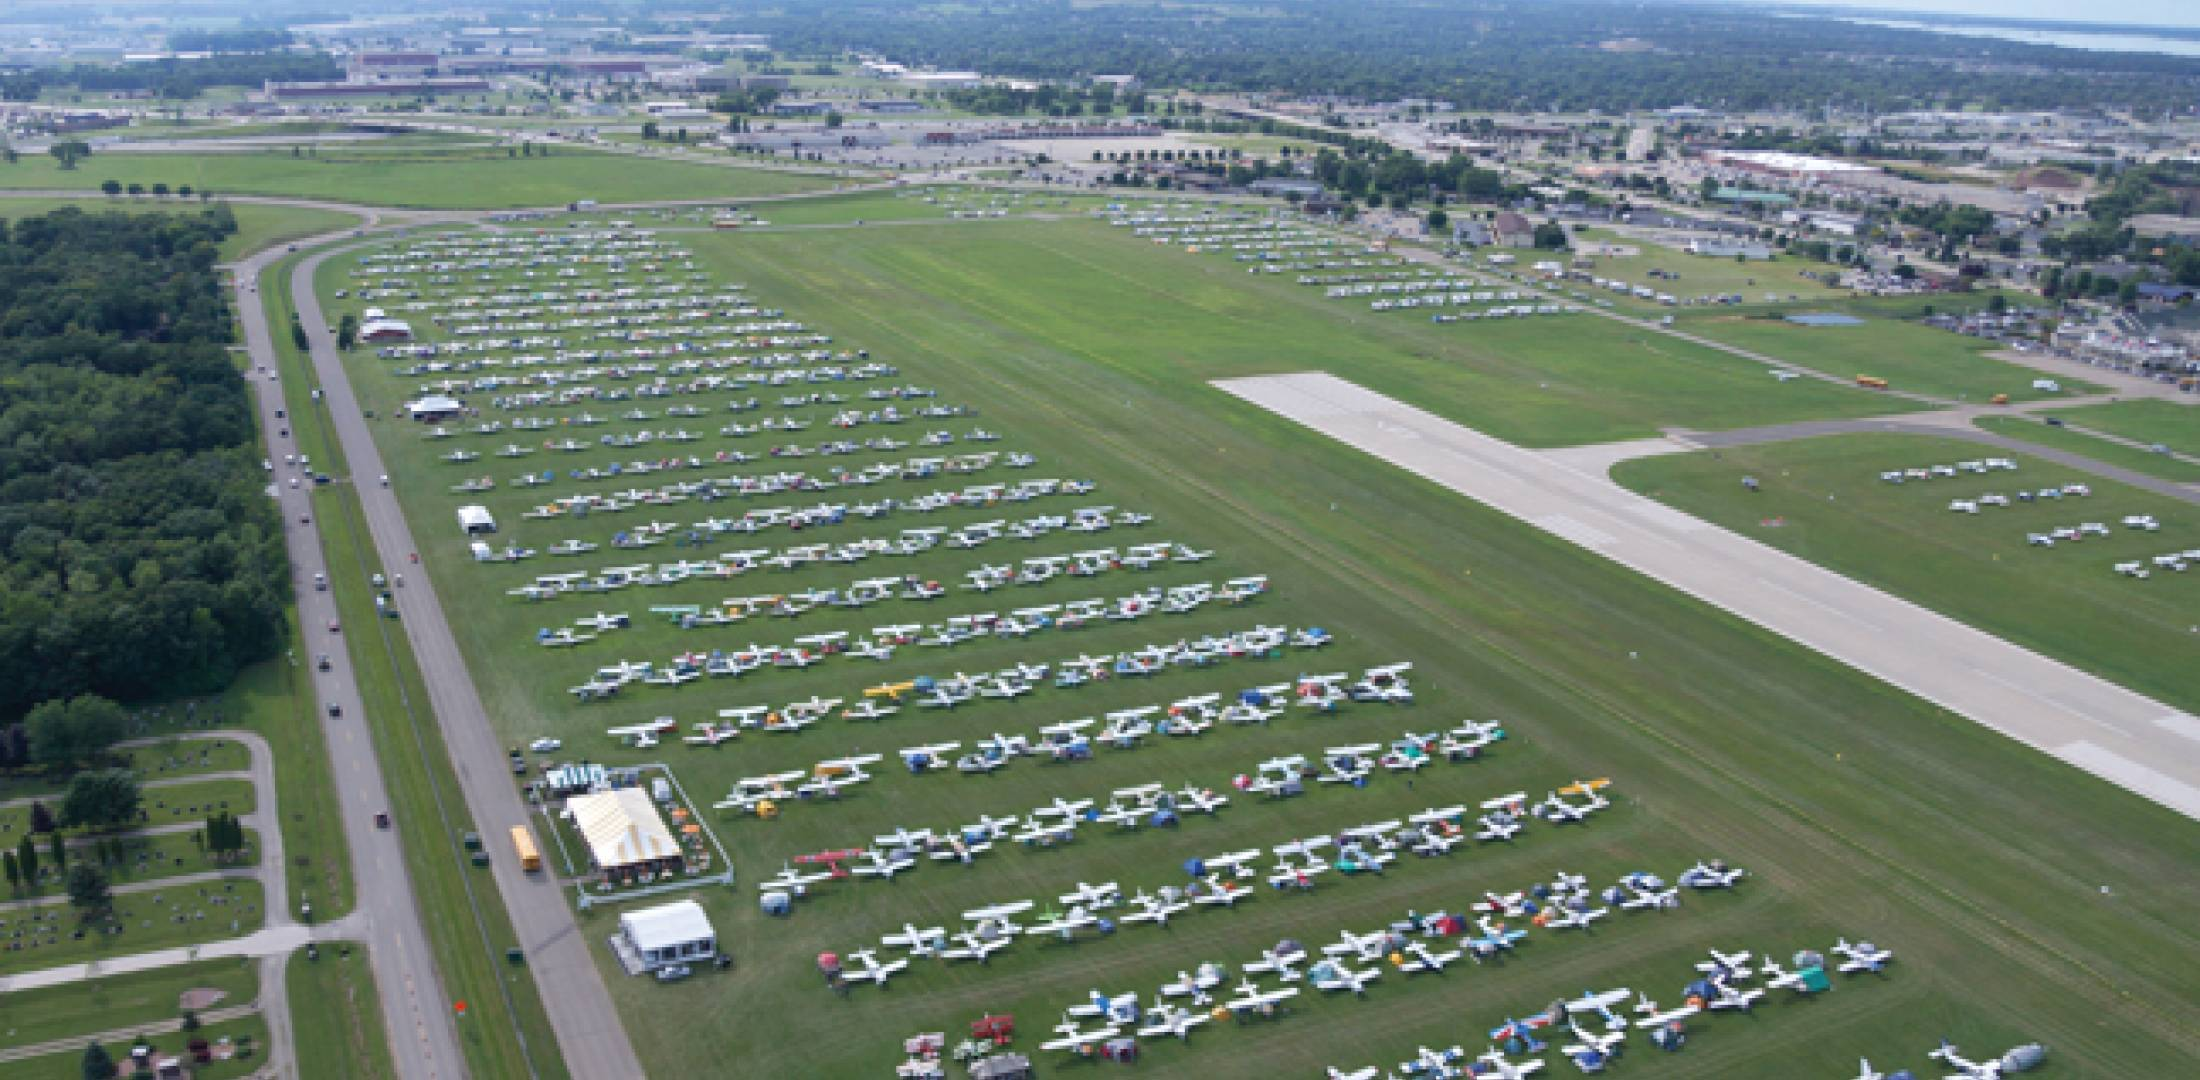 The North 40 parking/camping area filled up quickly, and excellent weather, amazing attractions and thousands of aircraft made this year's AirVenture something special.